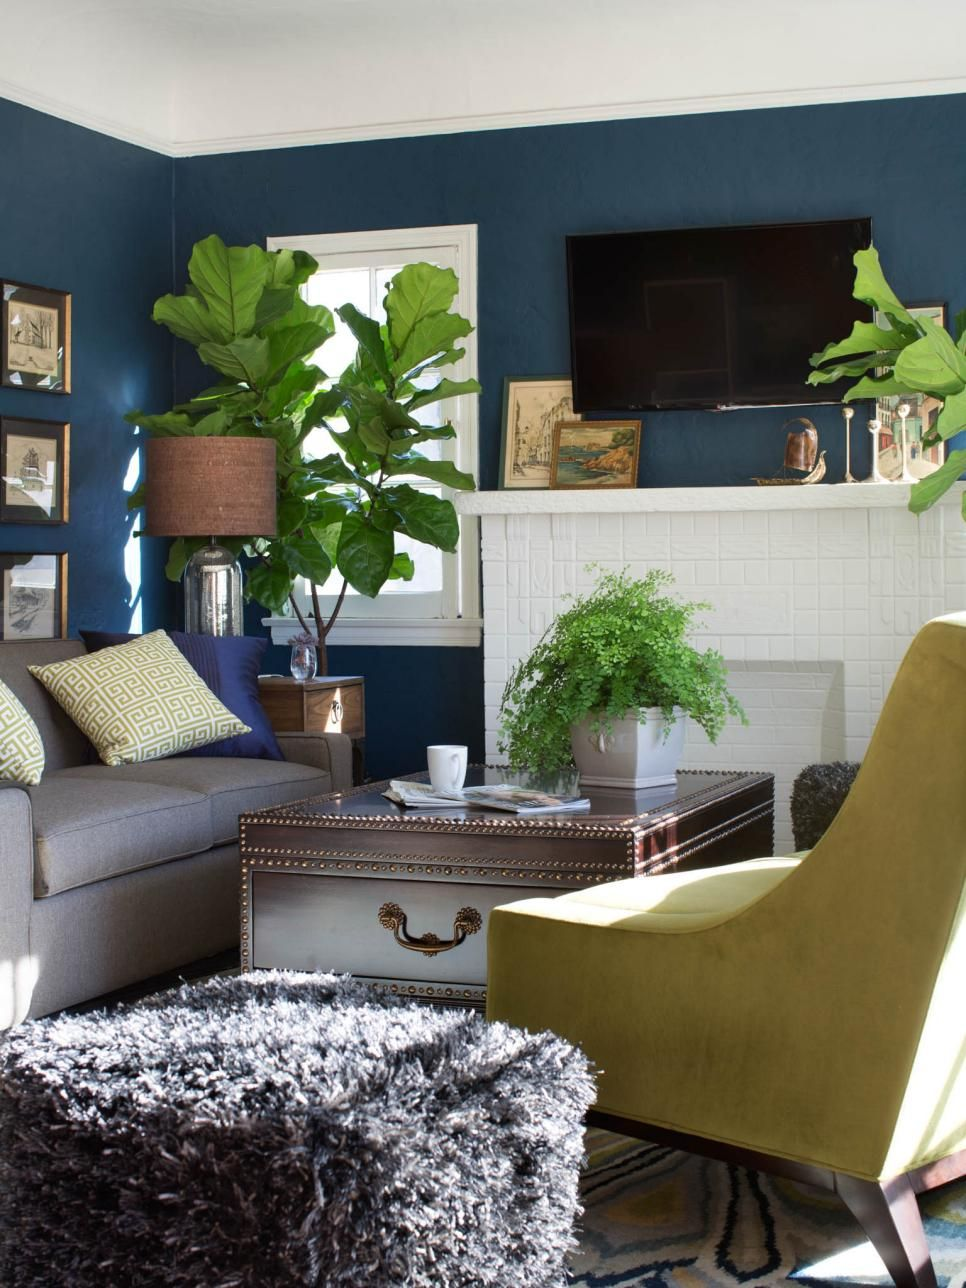 17 Wall Color Ideas for Every Room in the House | Pinterest